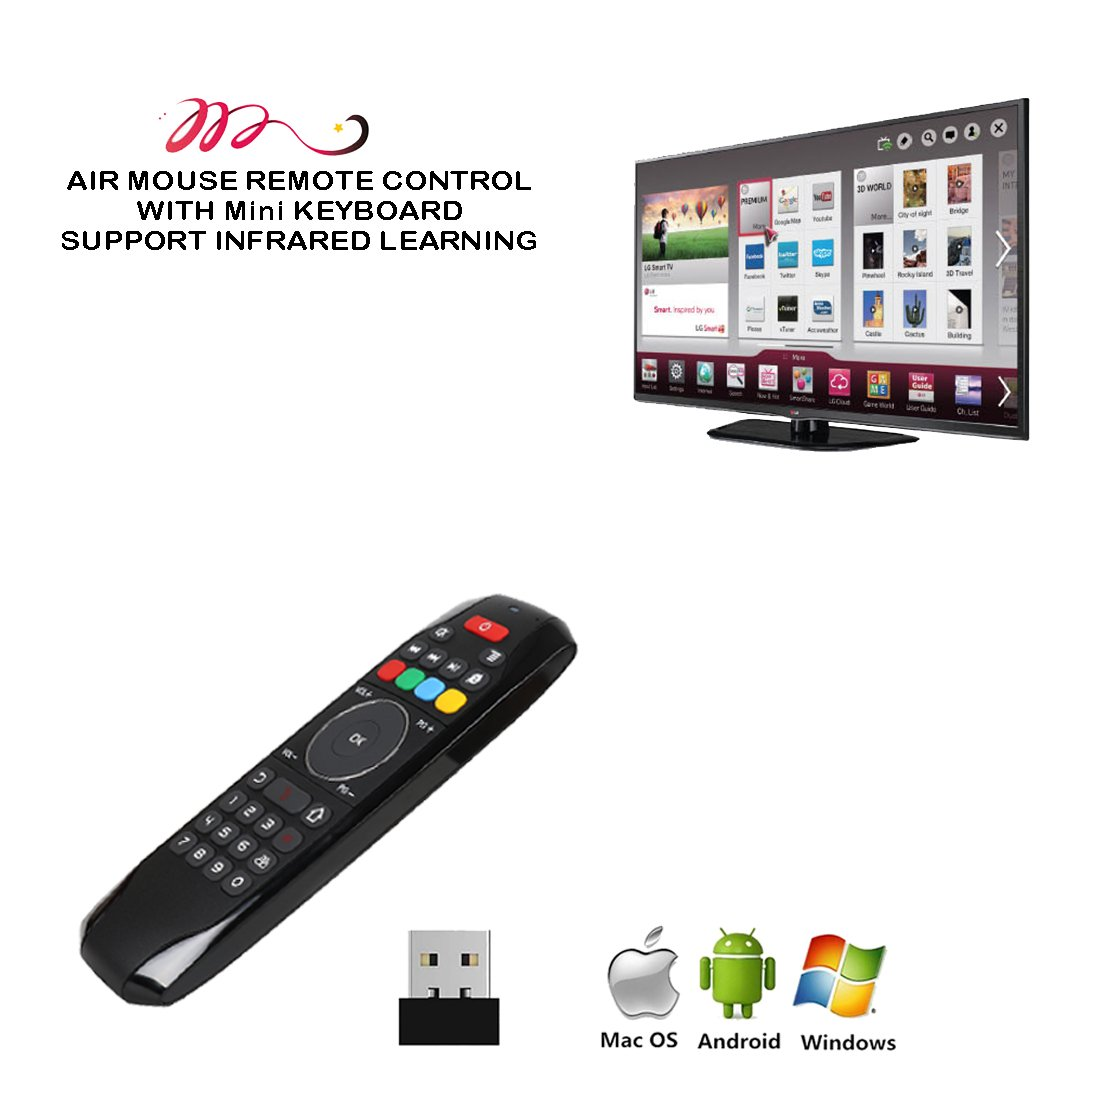 Air Mouse Remote, PTVDISPLAY 2.4G IR Learning Mouse Remote Control with Keyboard for Android TV Box Smart Projector MAC Pad HTPC iOS PC Windows Computer (Black) by PTVDISPLAY (Image #3)